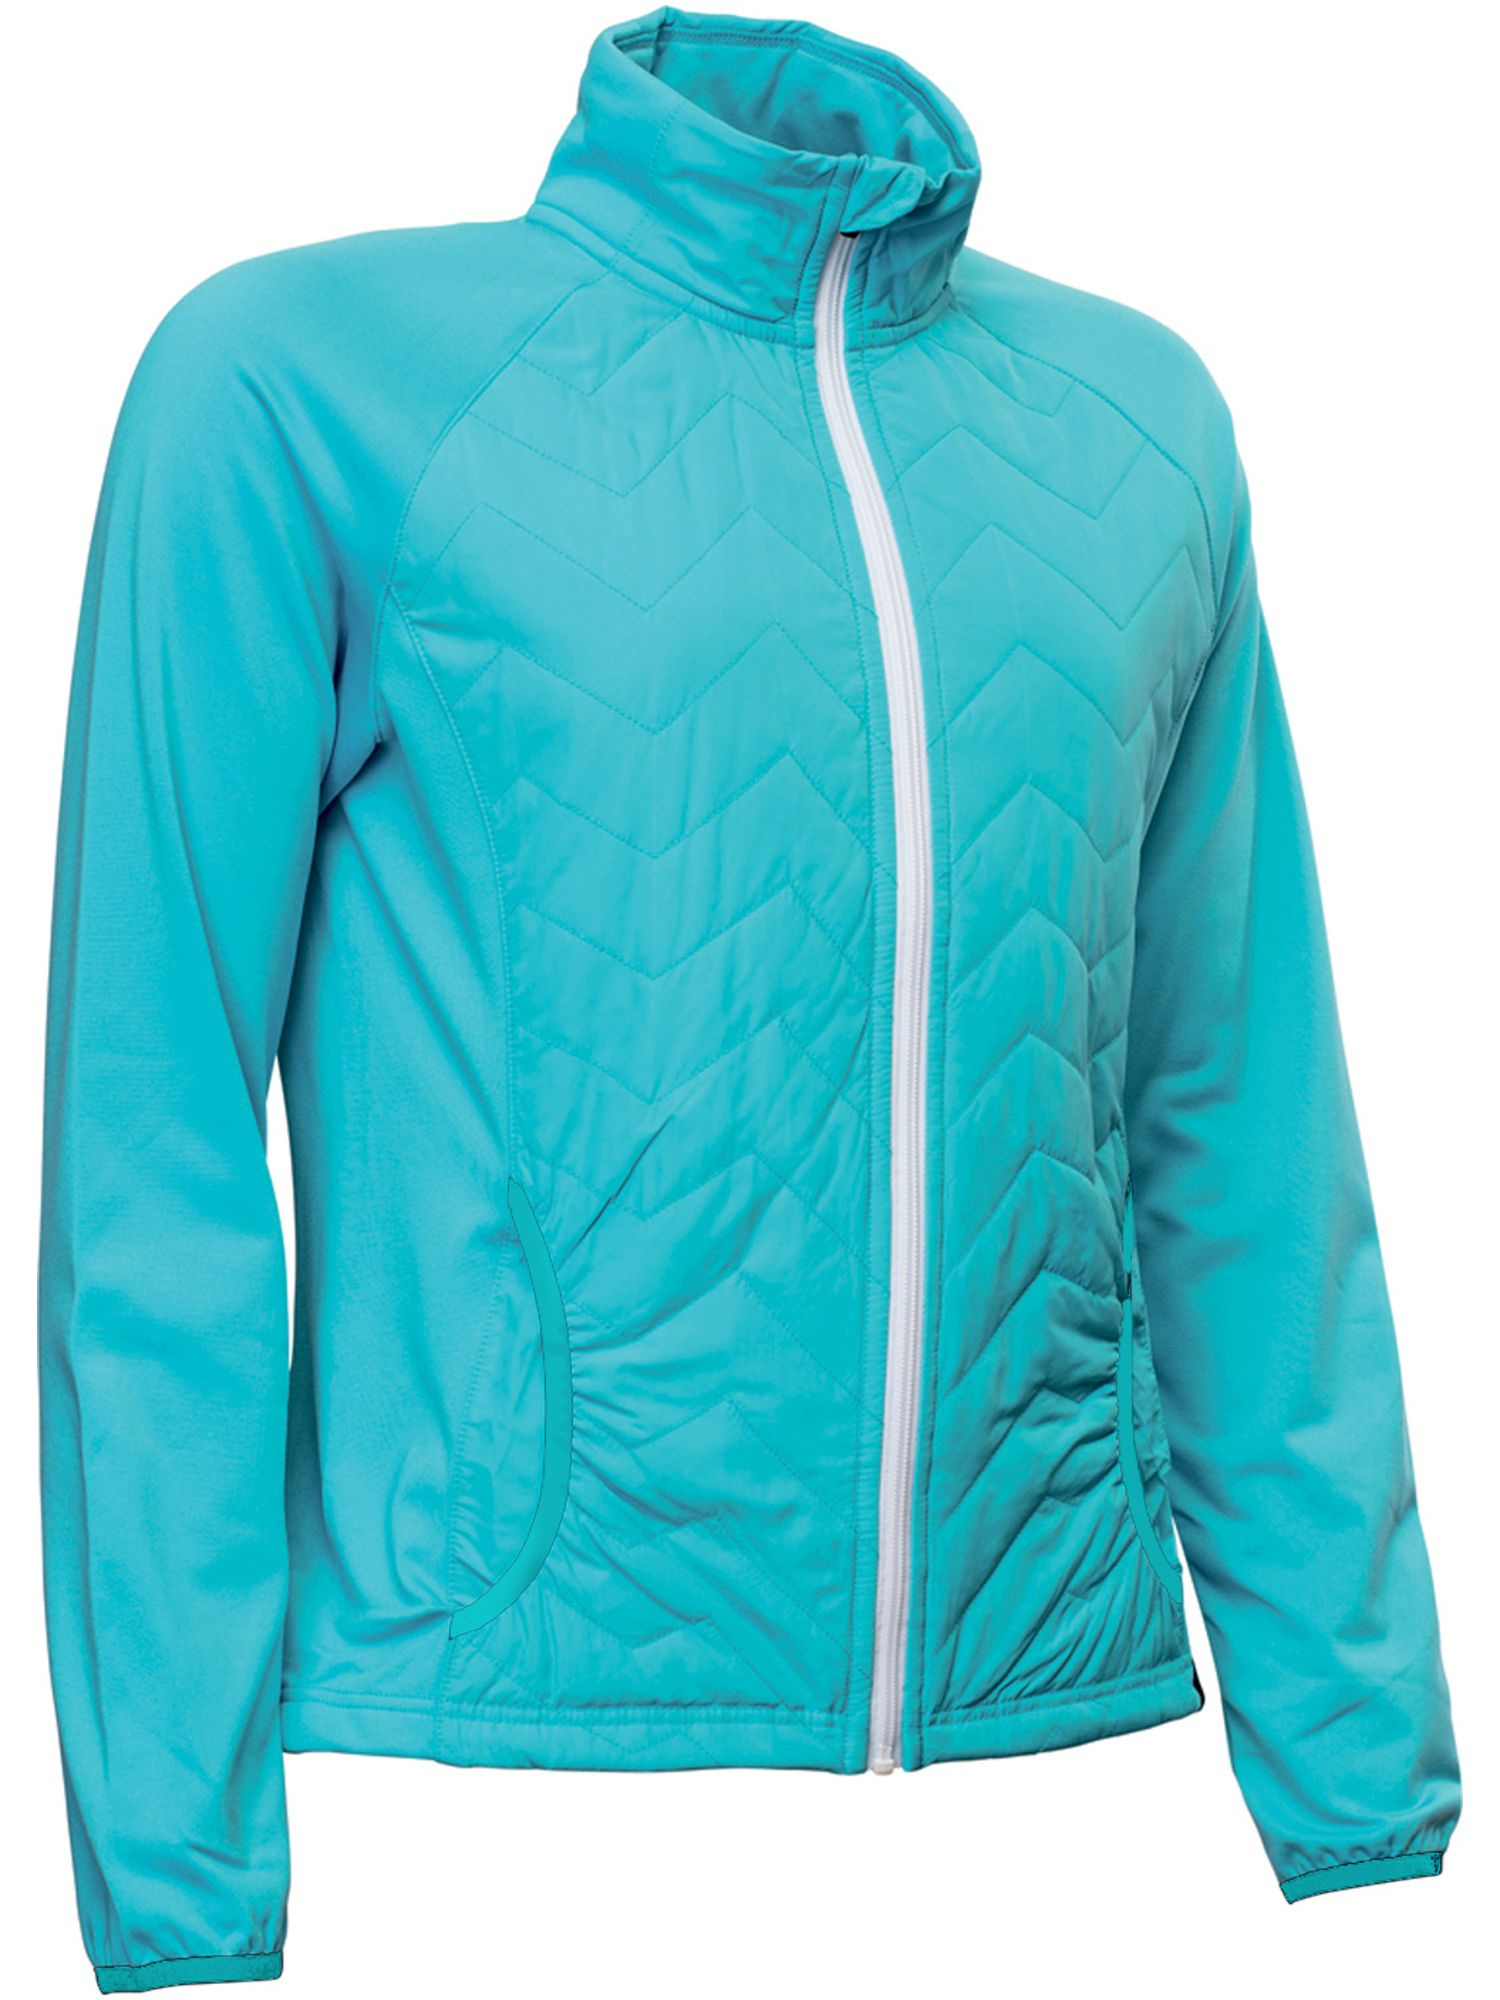 Abacus Hybrid Jacket, Blue